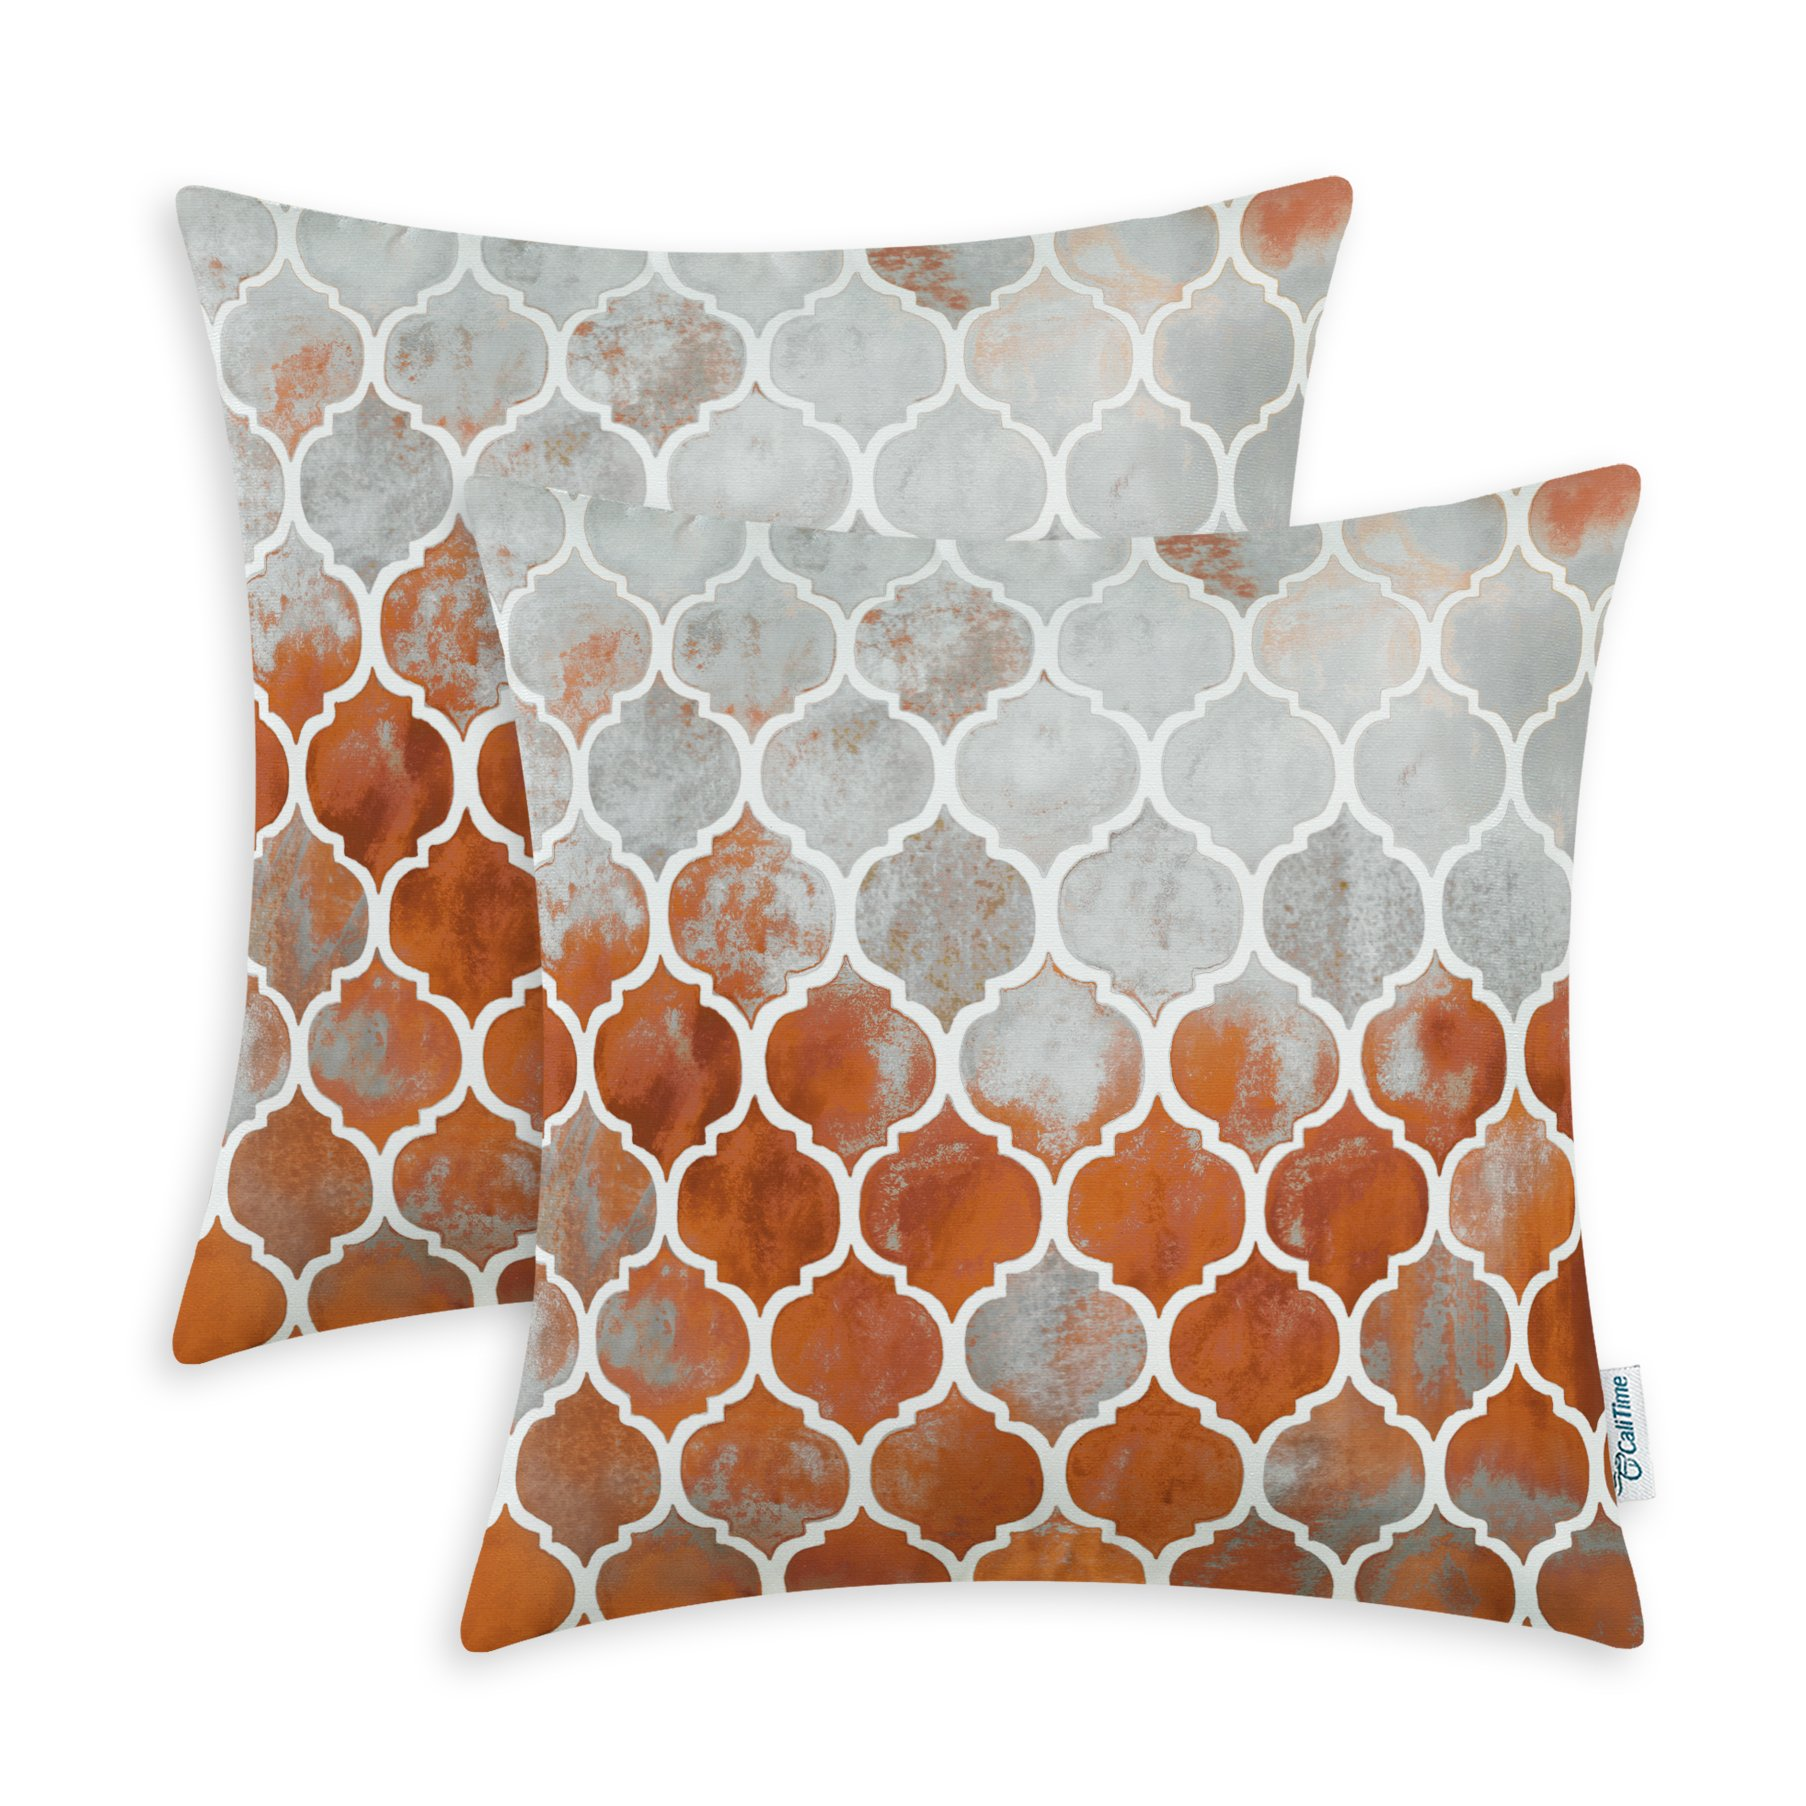 CaliTime Pack of 2 Cozy Throw Pillow Cases Covers Couch Bed Sofa Manual Hand Painted Colorful Geometric Trellis Chain Print 20 X 20 Inches Main Grey Rust Red